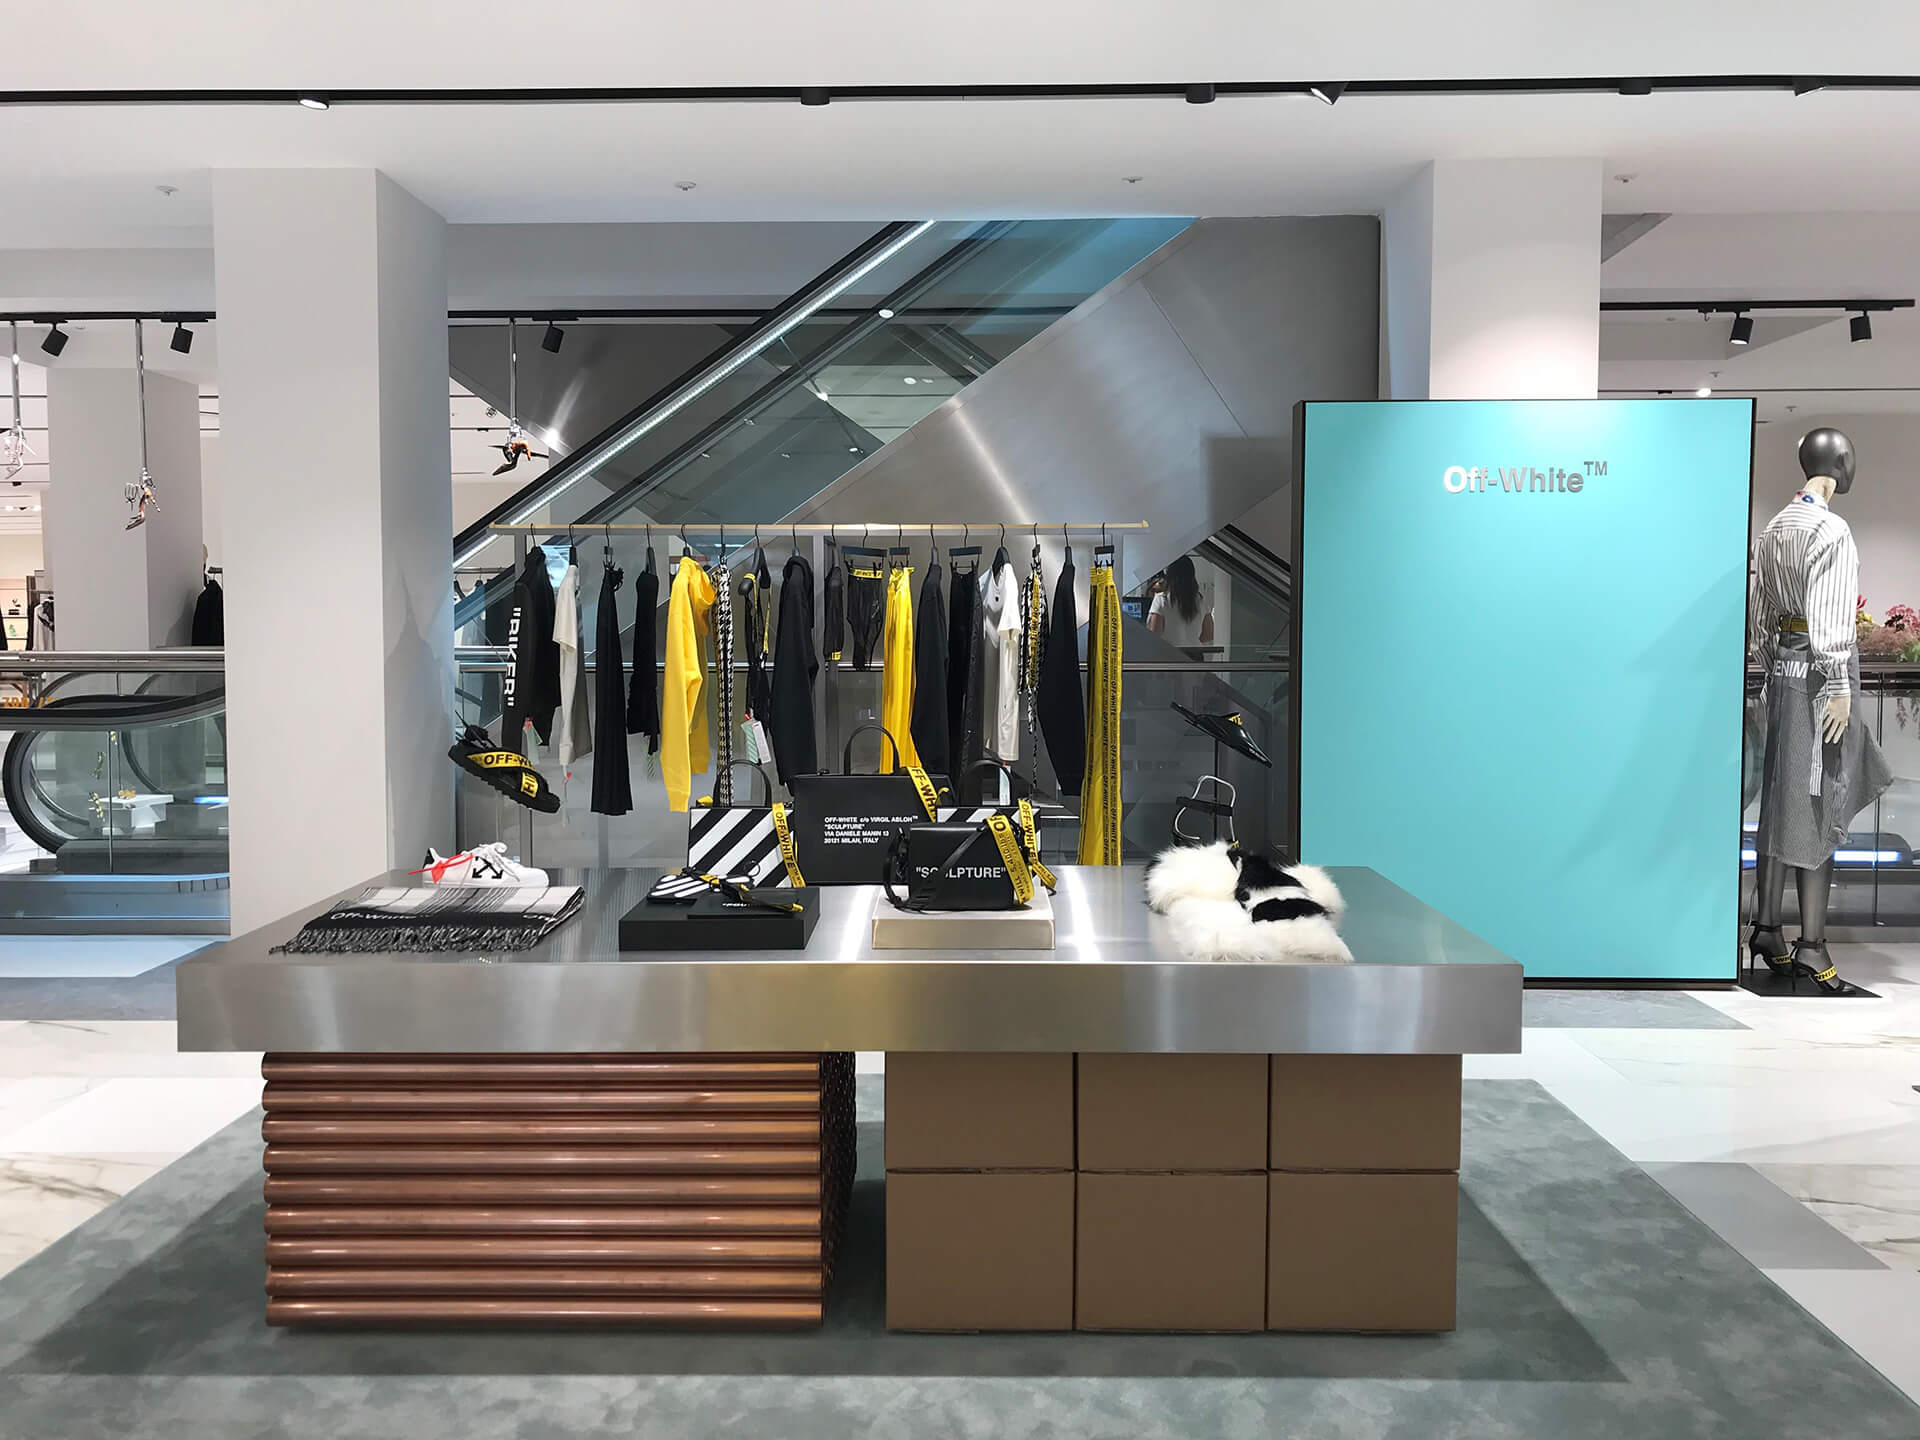 Harvey Nichols instore new launch bespoke prop copper tubing harvey nichols prop manufacture visual merchandising production